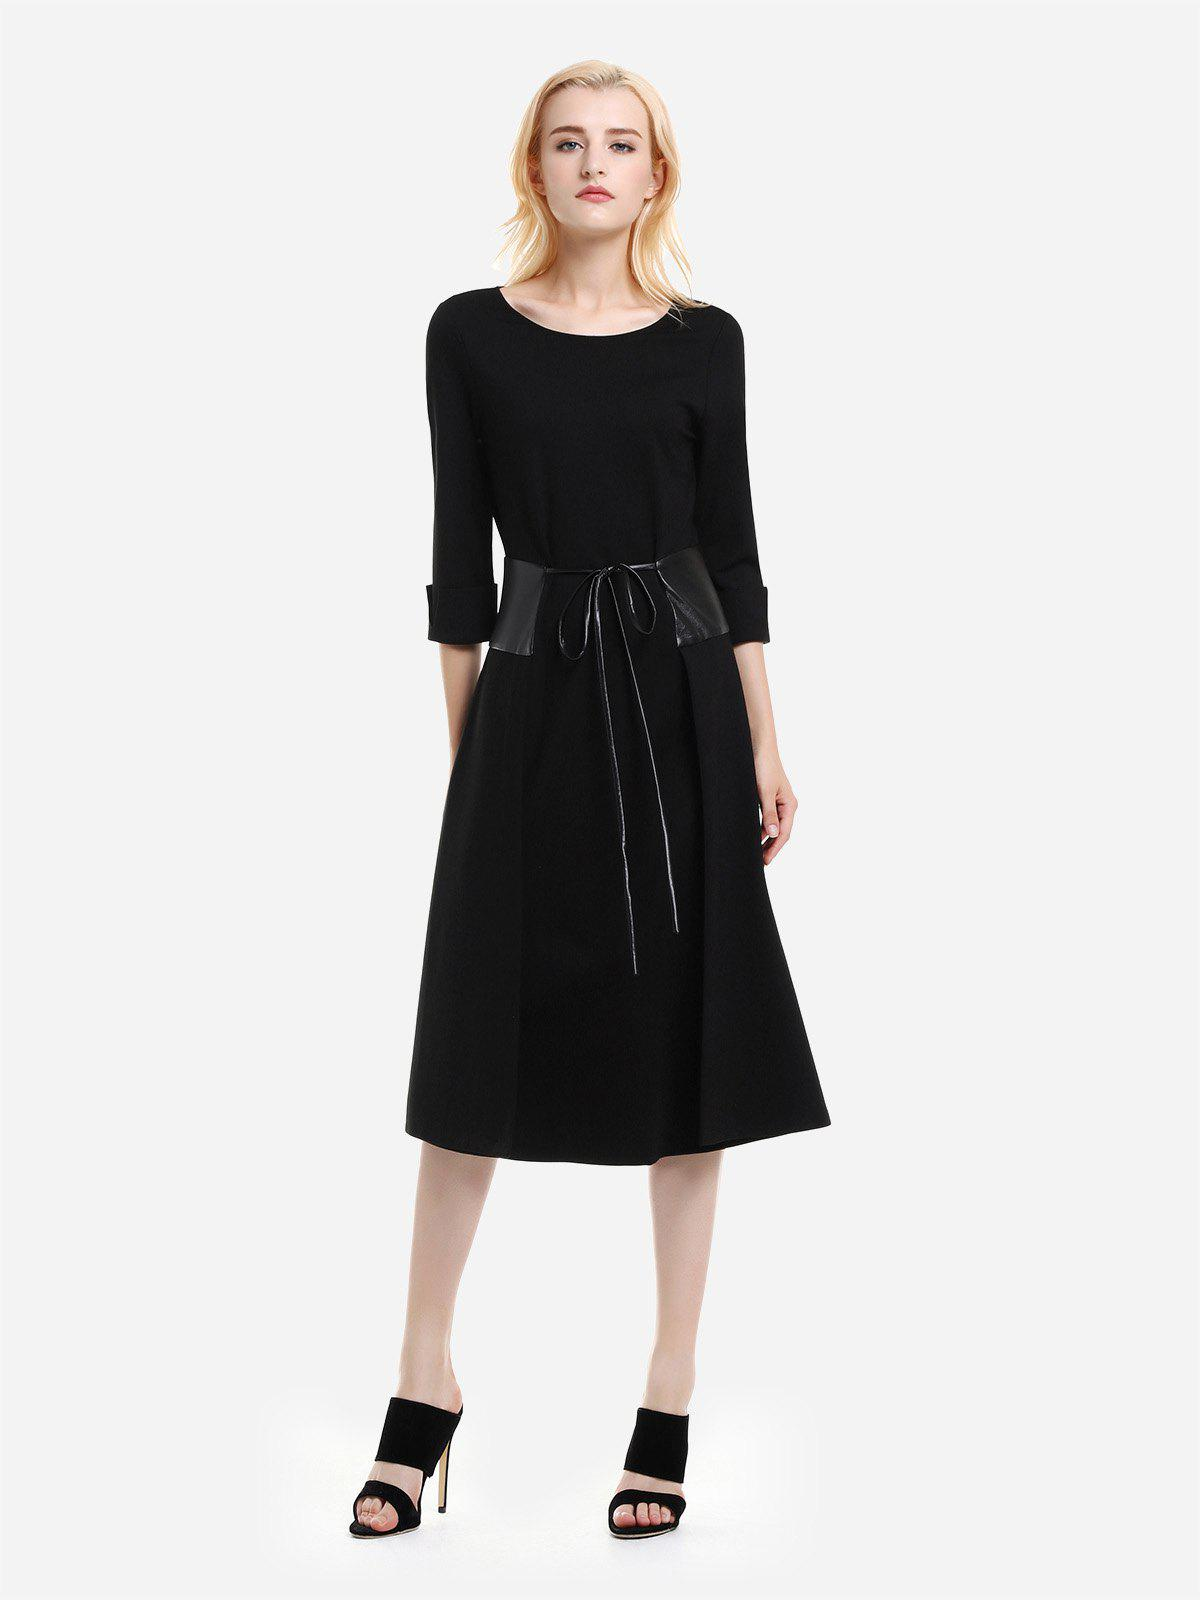 ZAN.STYLE Below the Knee Long Sleeve Dress - BLACK XL